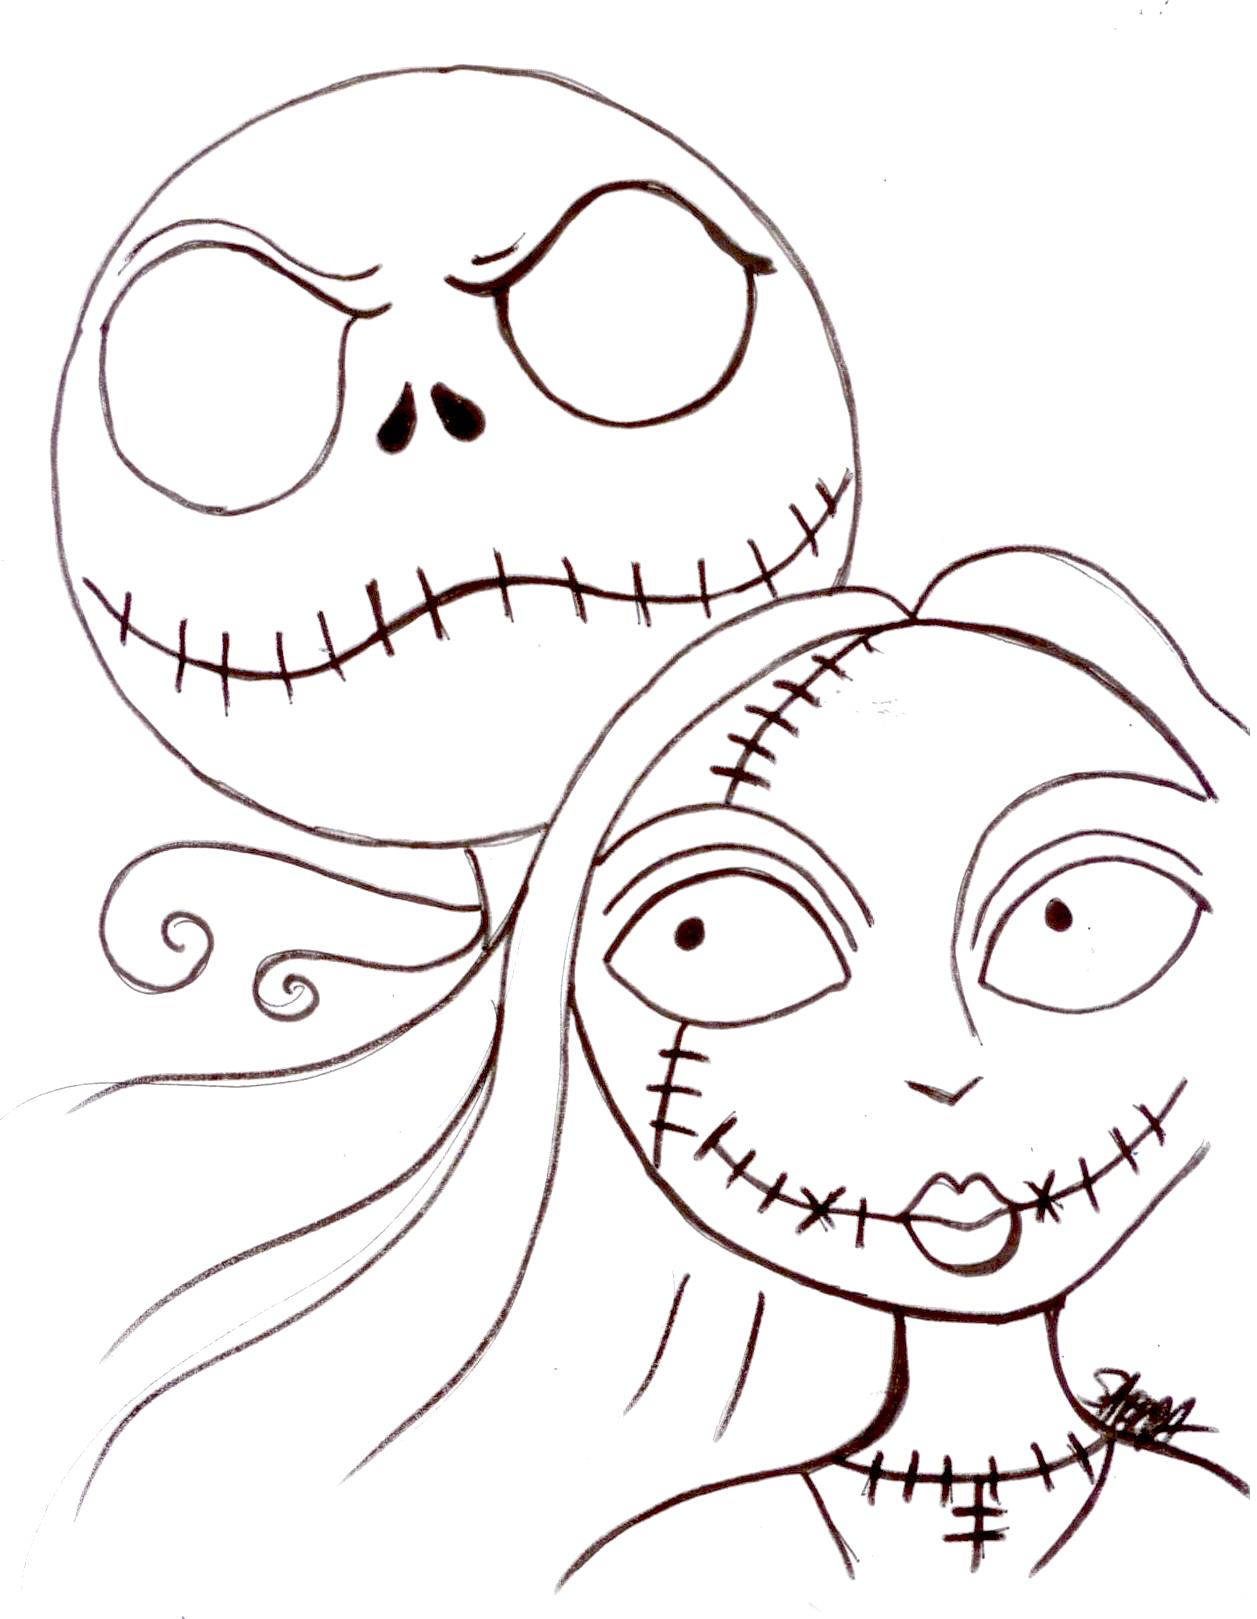 Jack Loves Sally Full Painting Tutorial For The Art Sherpa Youtube Nightmare Before Christmas Drawings The Art Sherpa Nightmare Before Christmas Tattoo